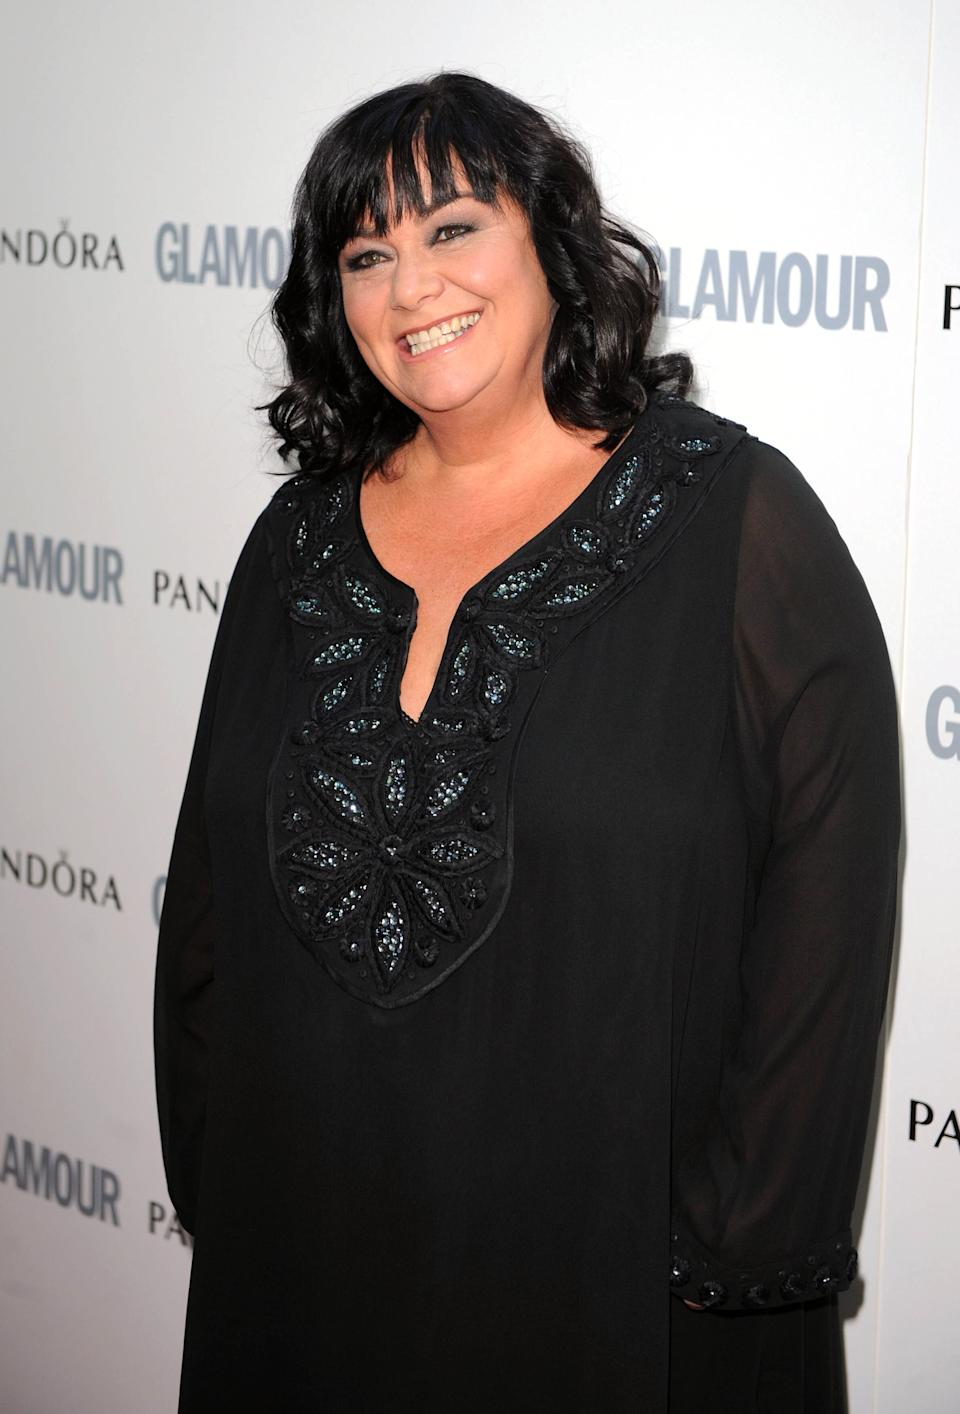 Dawn French arriving at the Glamour Women of the Year Awards 2011, Berkeley Square, London.